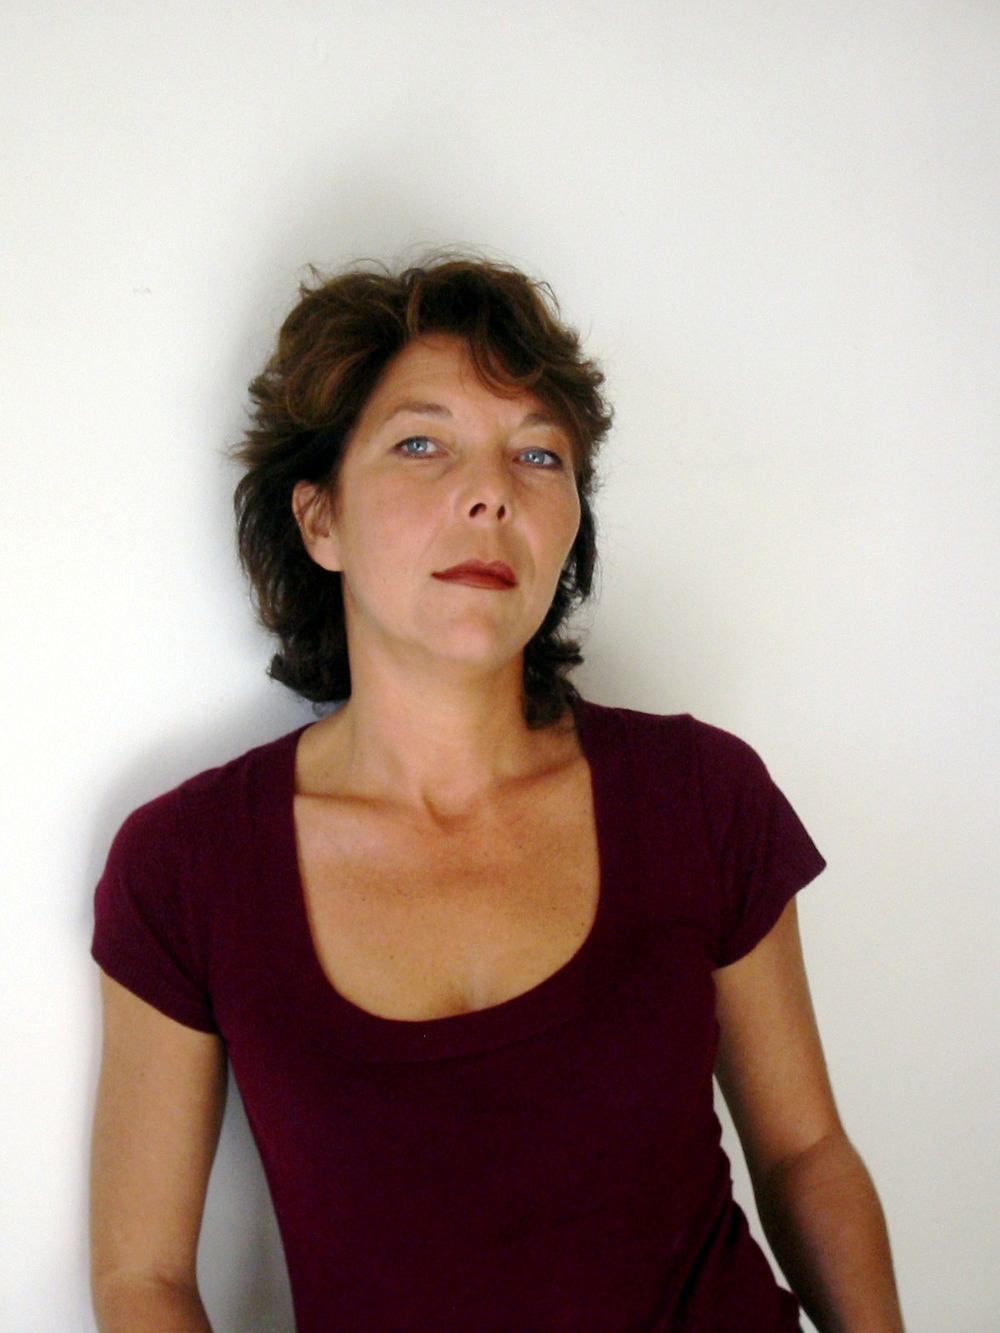 Author and art specialist Anne-Laure Thiéblemont